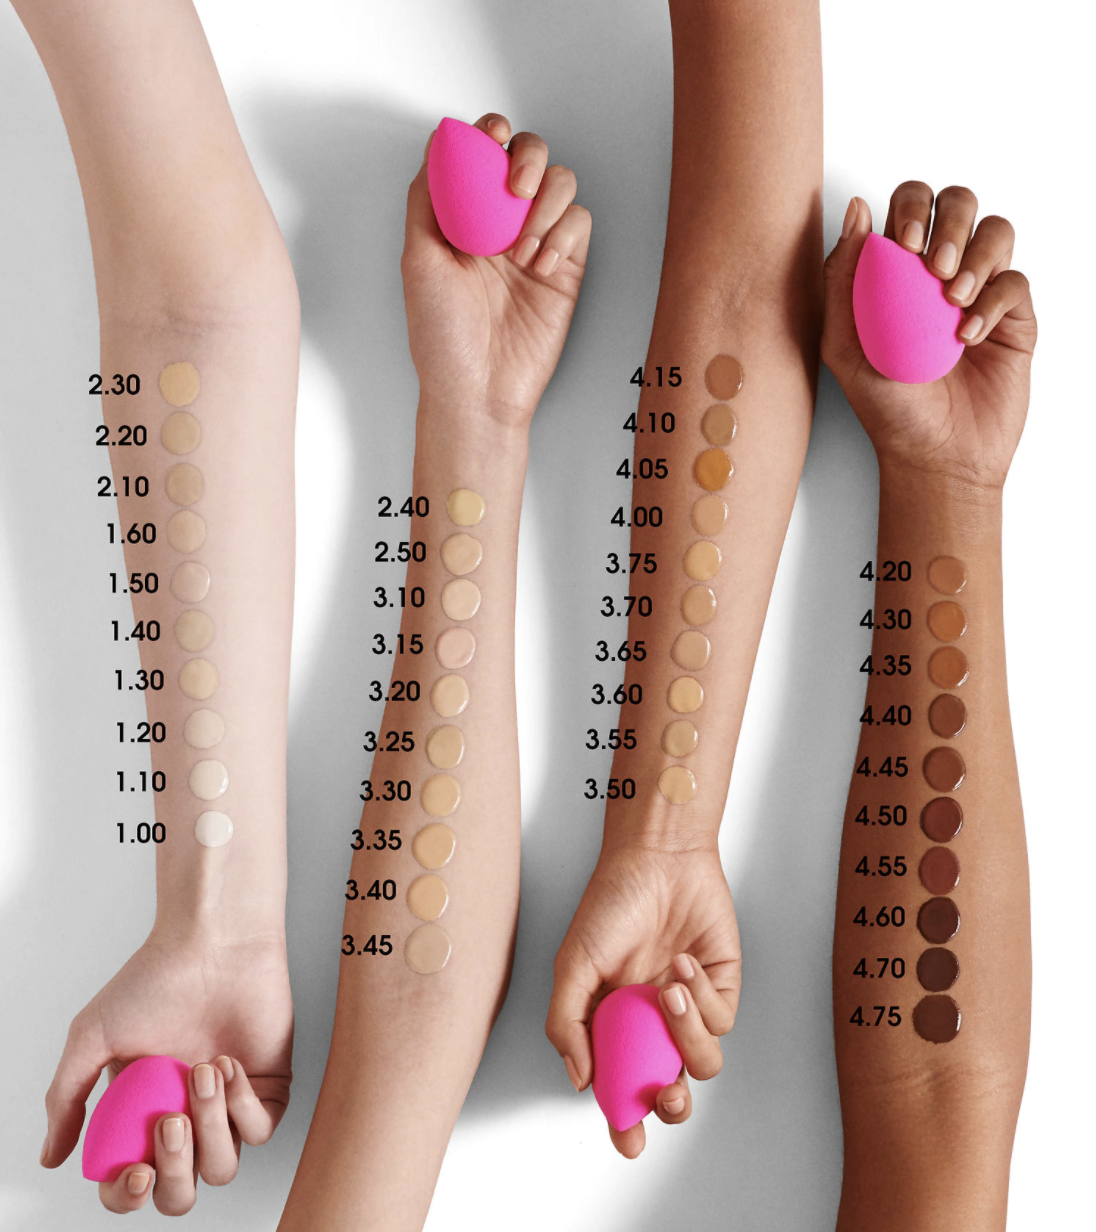 Swatches of the shades on four arms with different skin tones